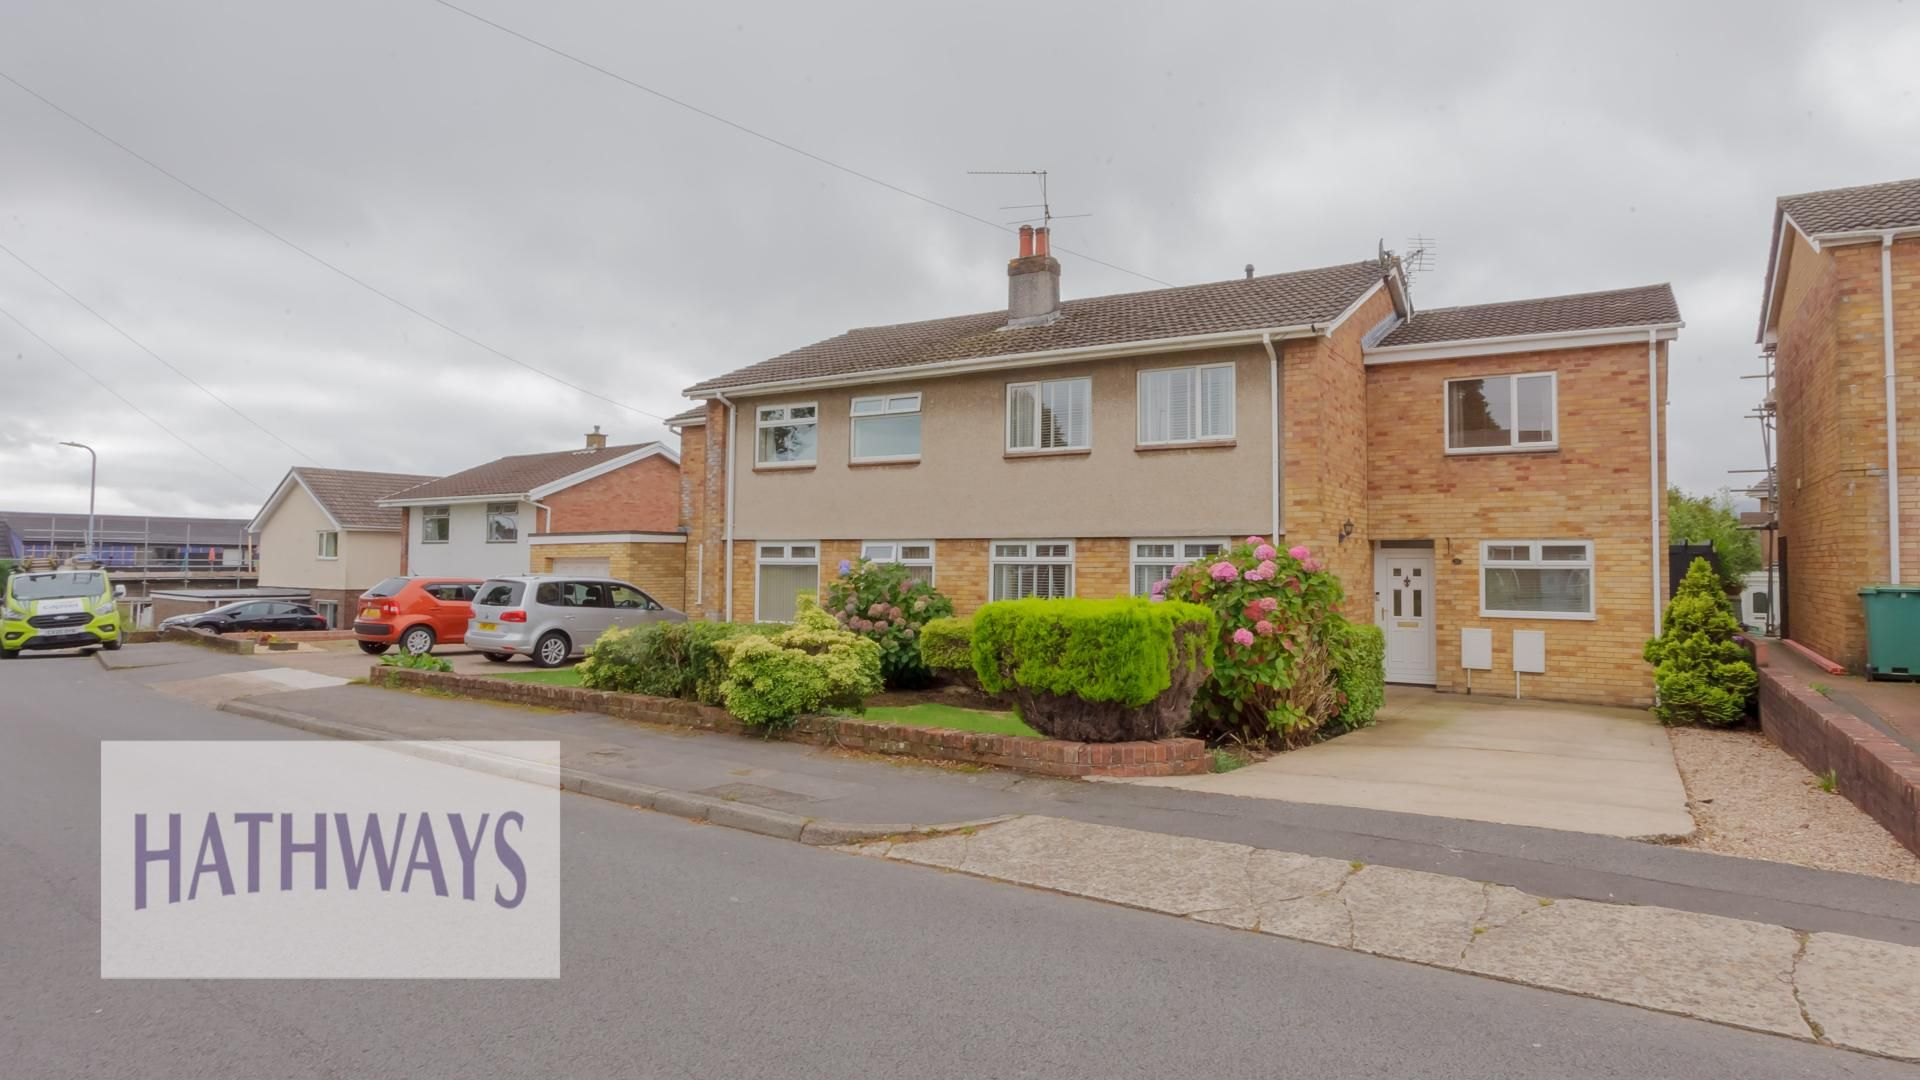 4 bed house for sale in Pettingale Road, NP44